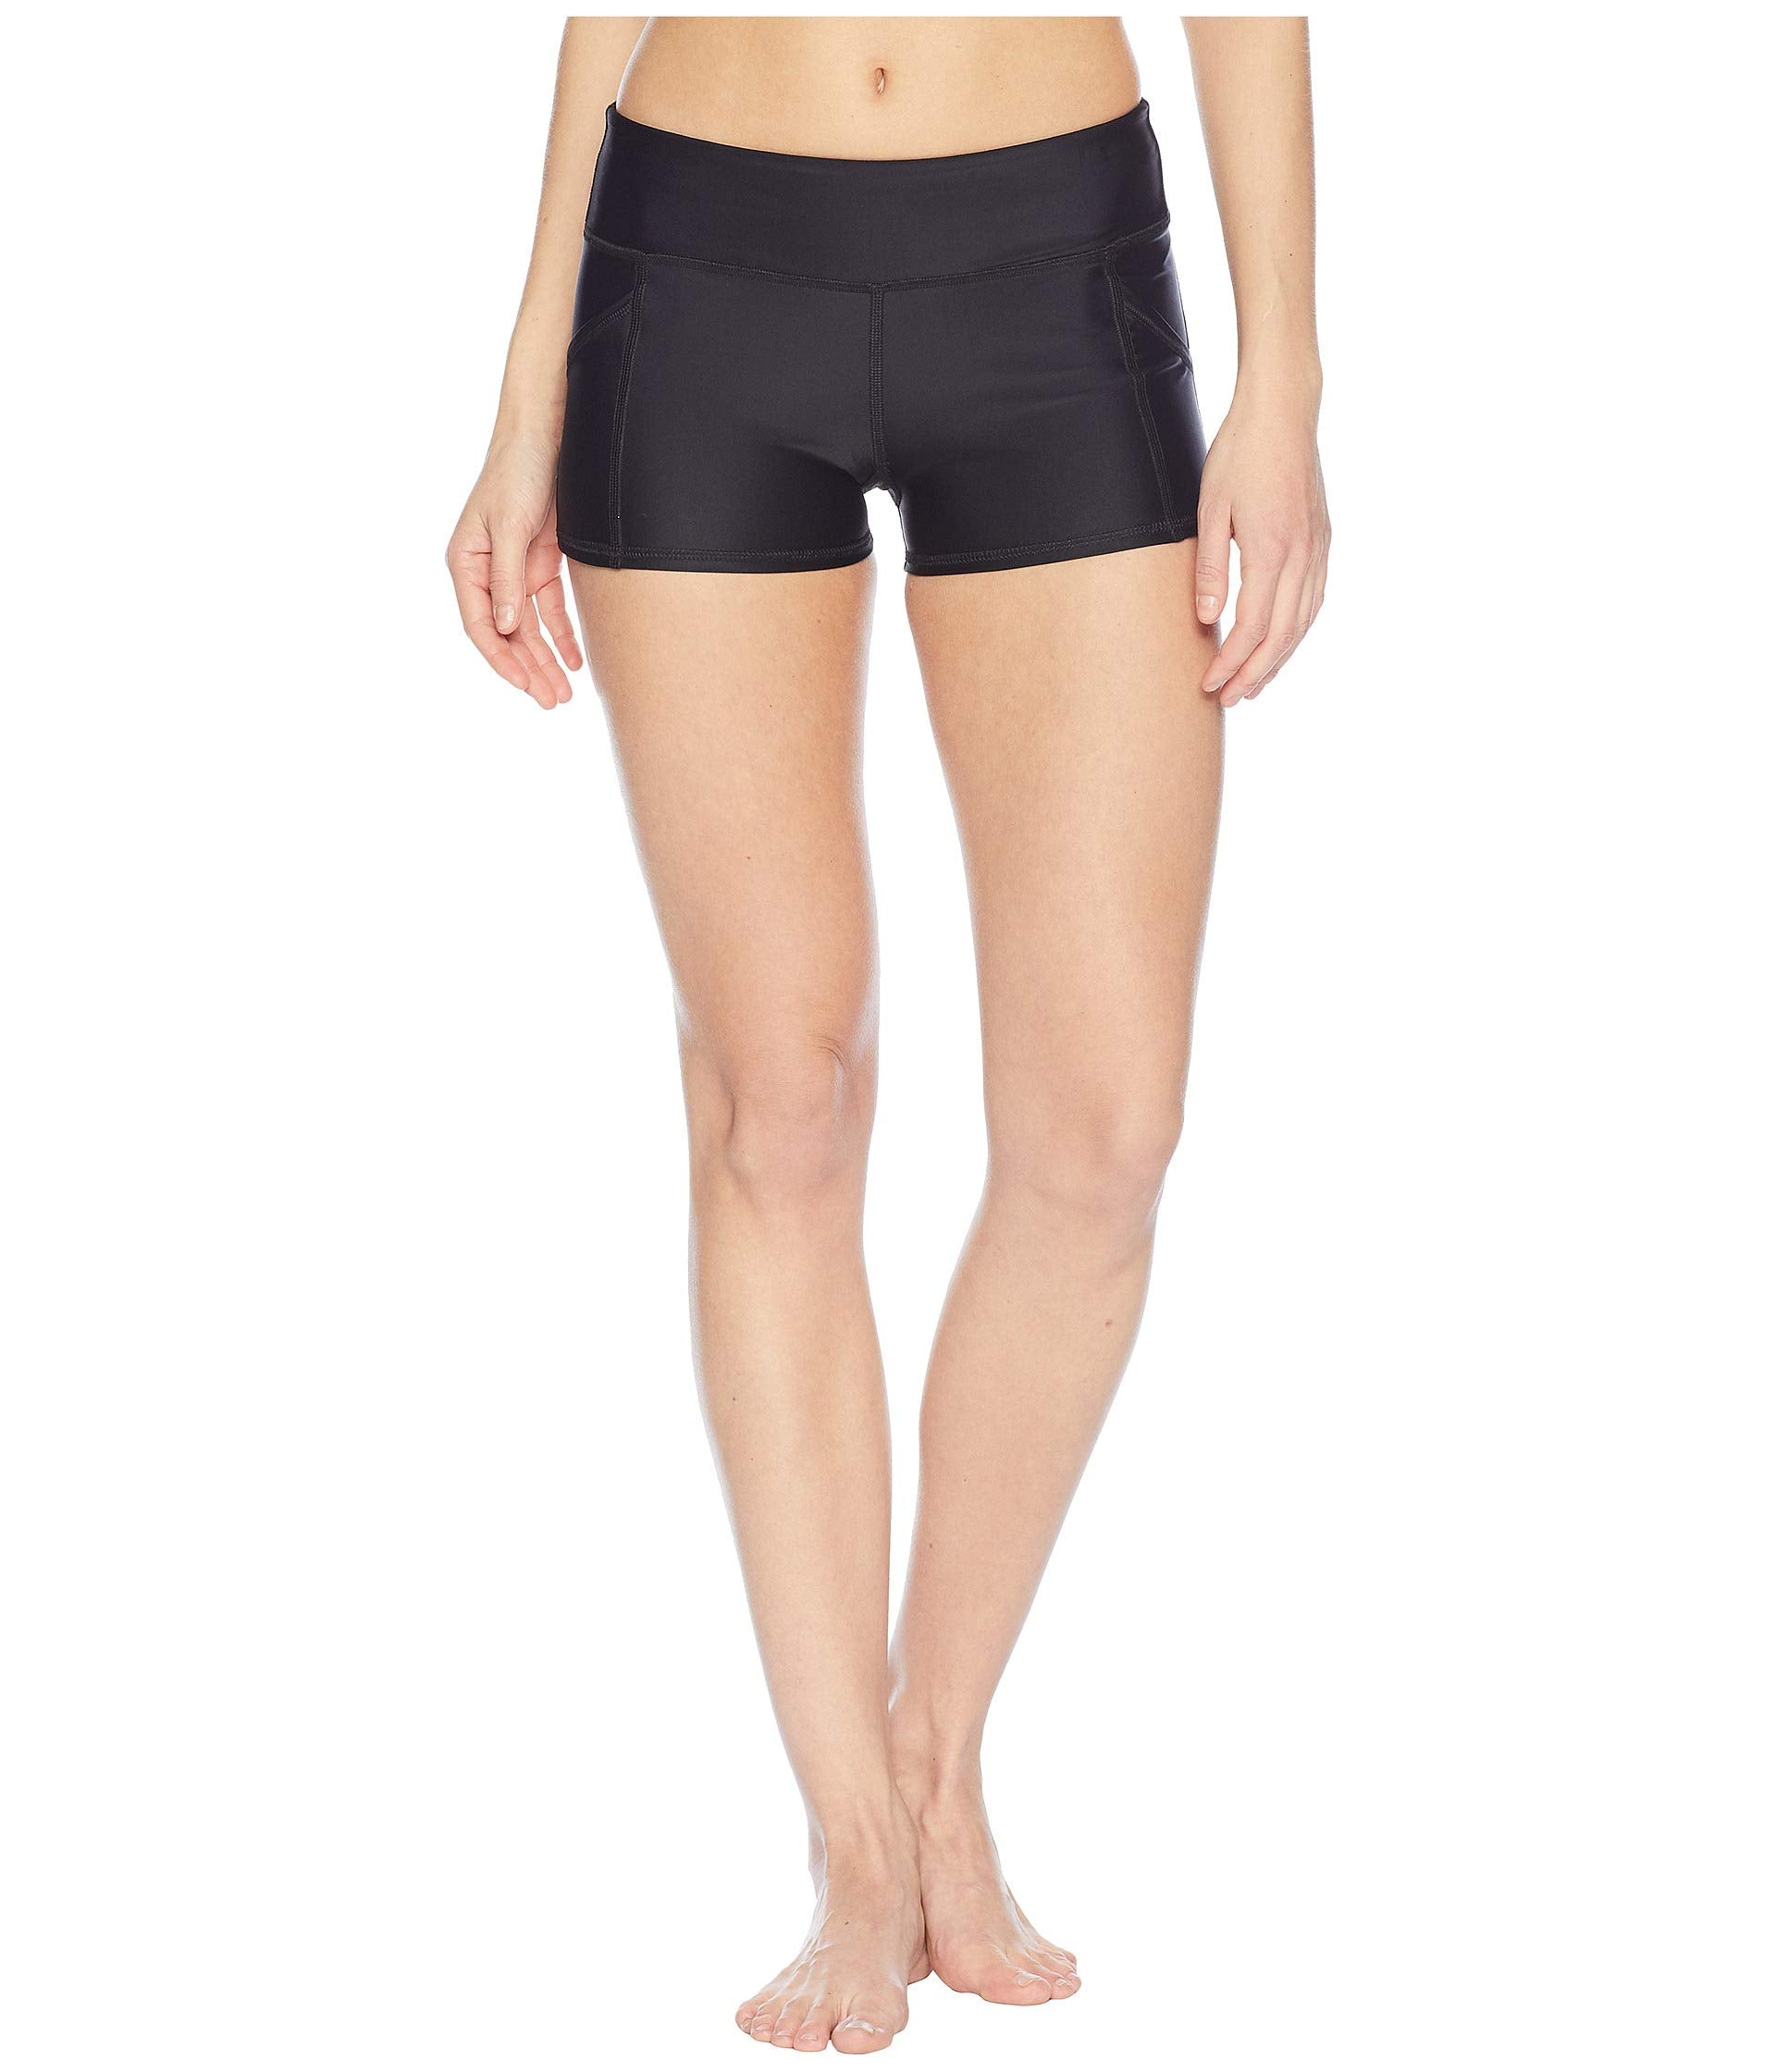 Smoothies Rider Shorts (W) - Black